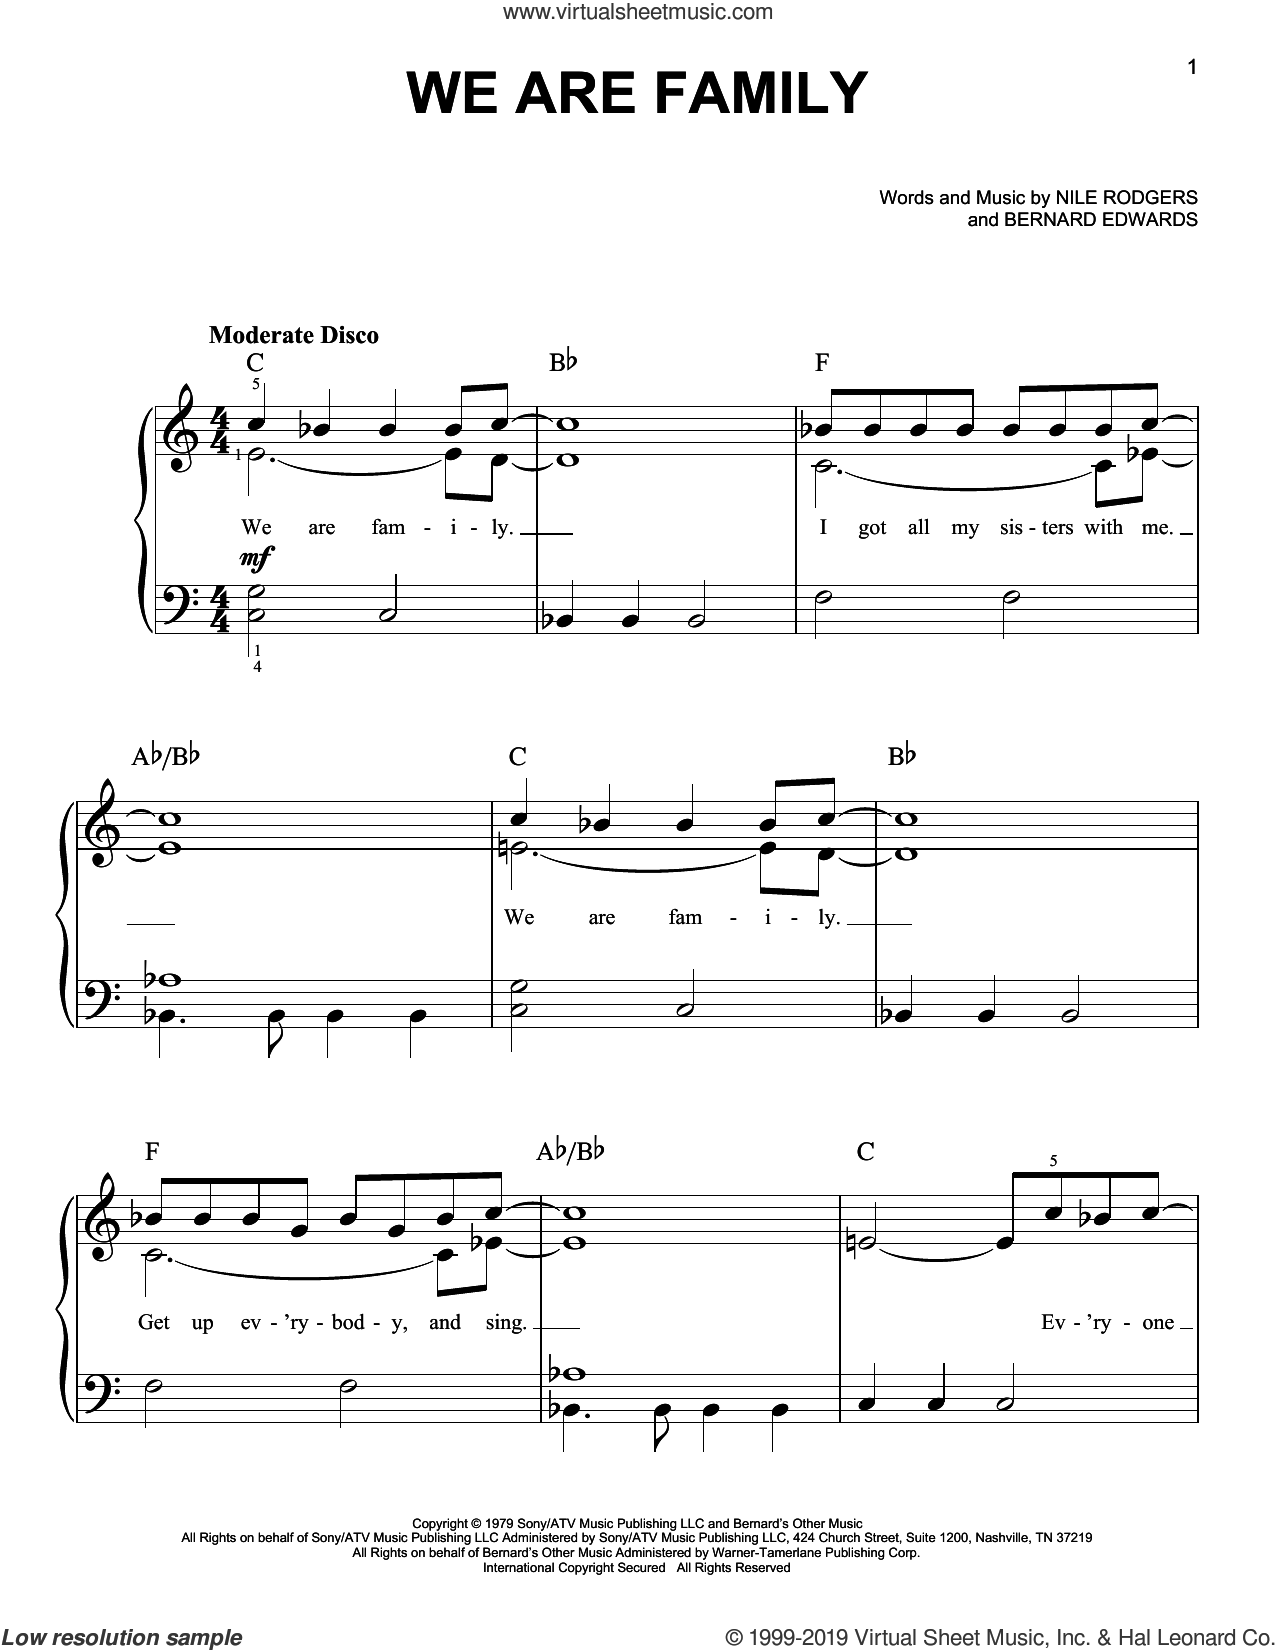 We Are Family sheet music for piano solo by Sister Sledge, Bernard Edwards and Nile Rodgers, easy skill level